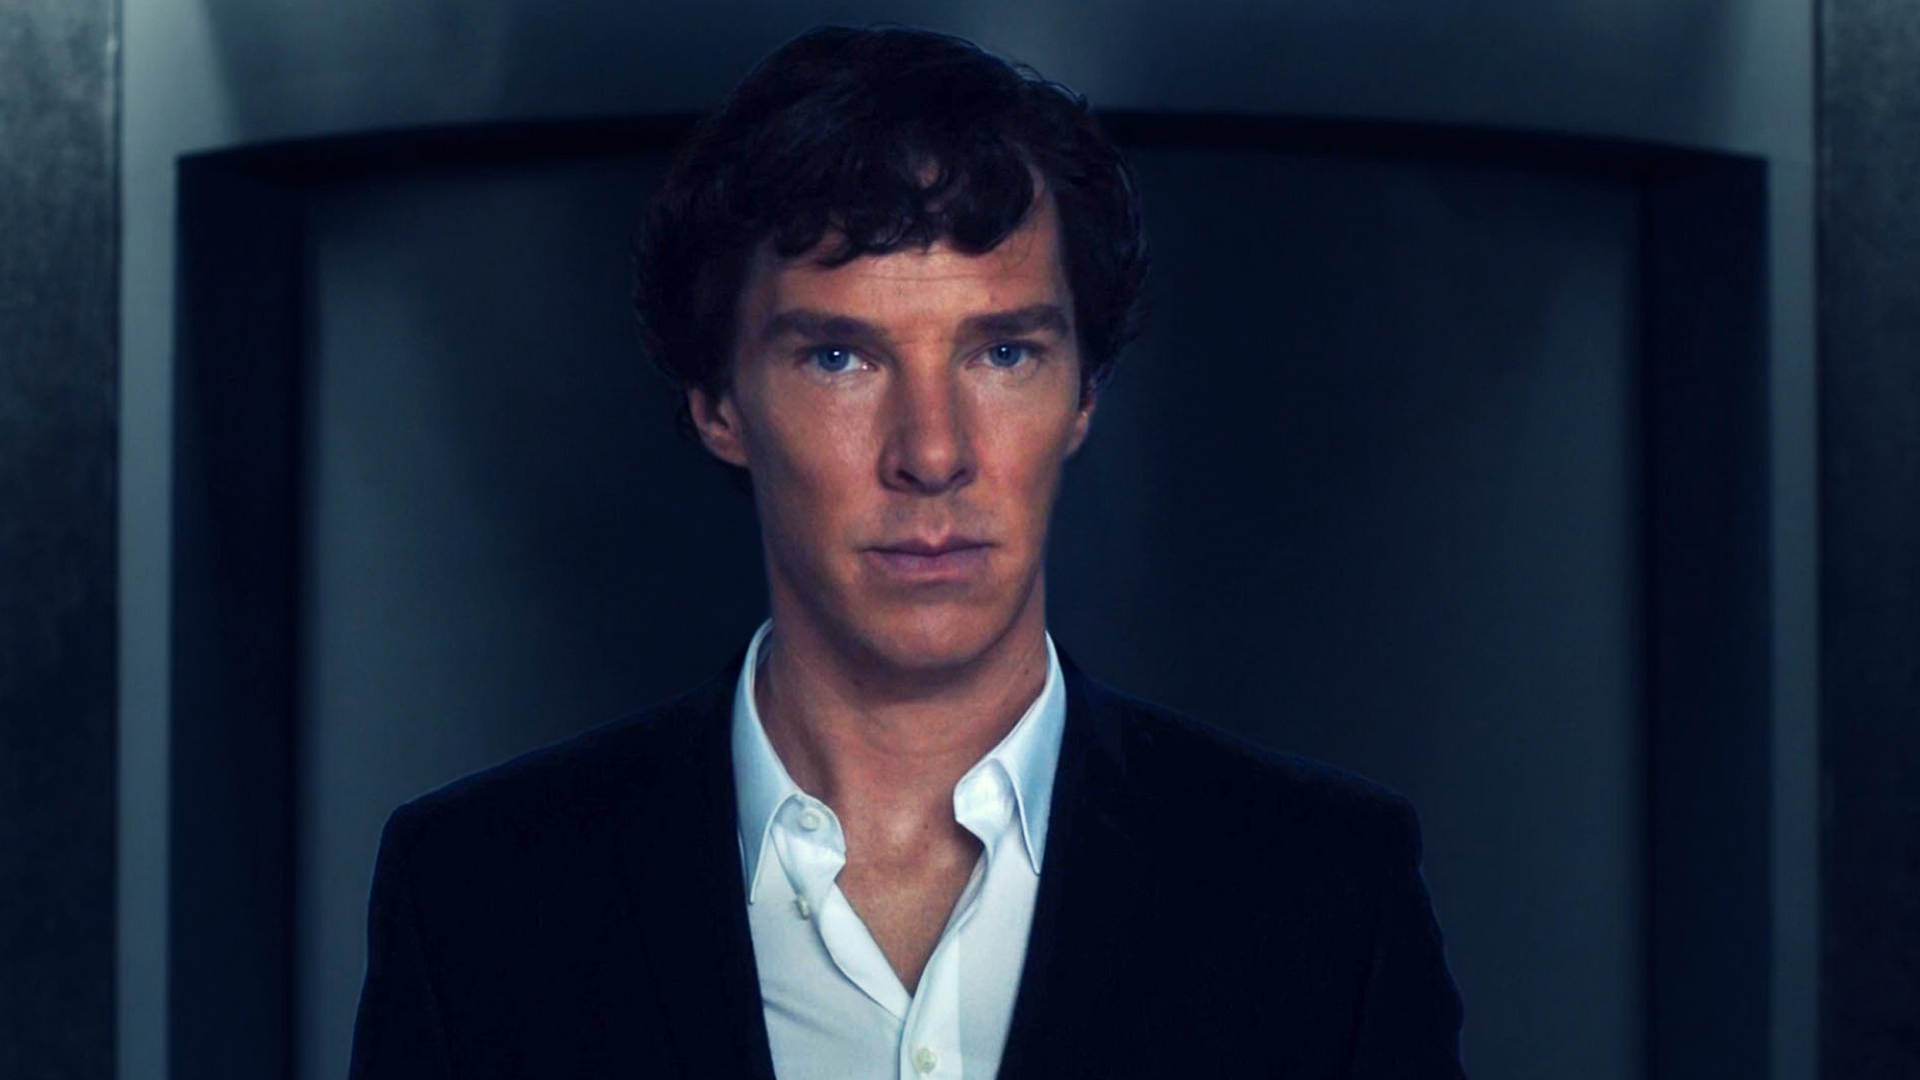 sherlock s04e03 10 Reasons Why 'Sherlock' Is Actually Bad Right Now